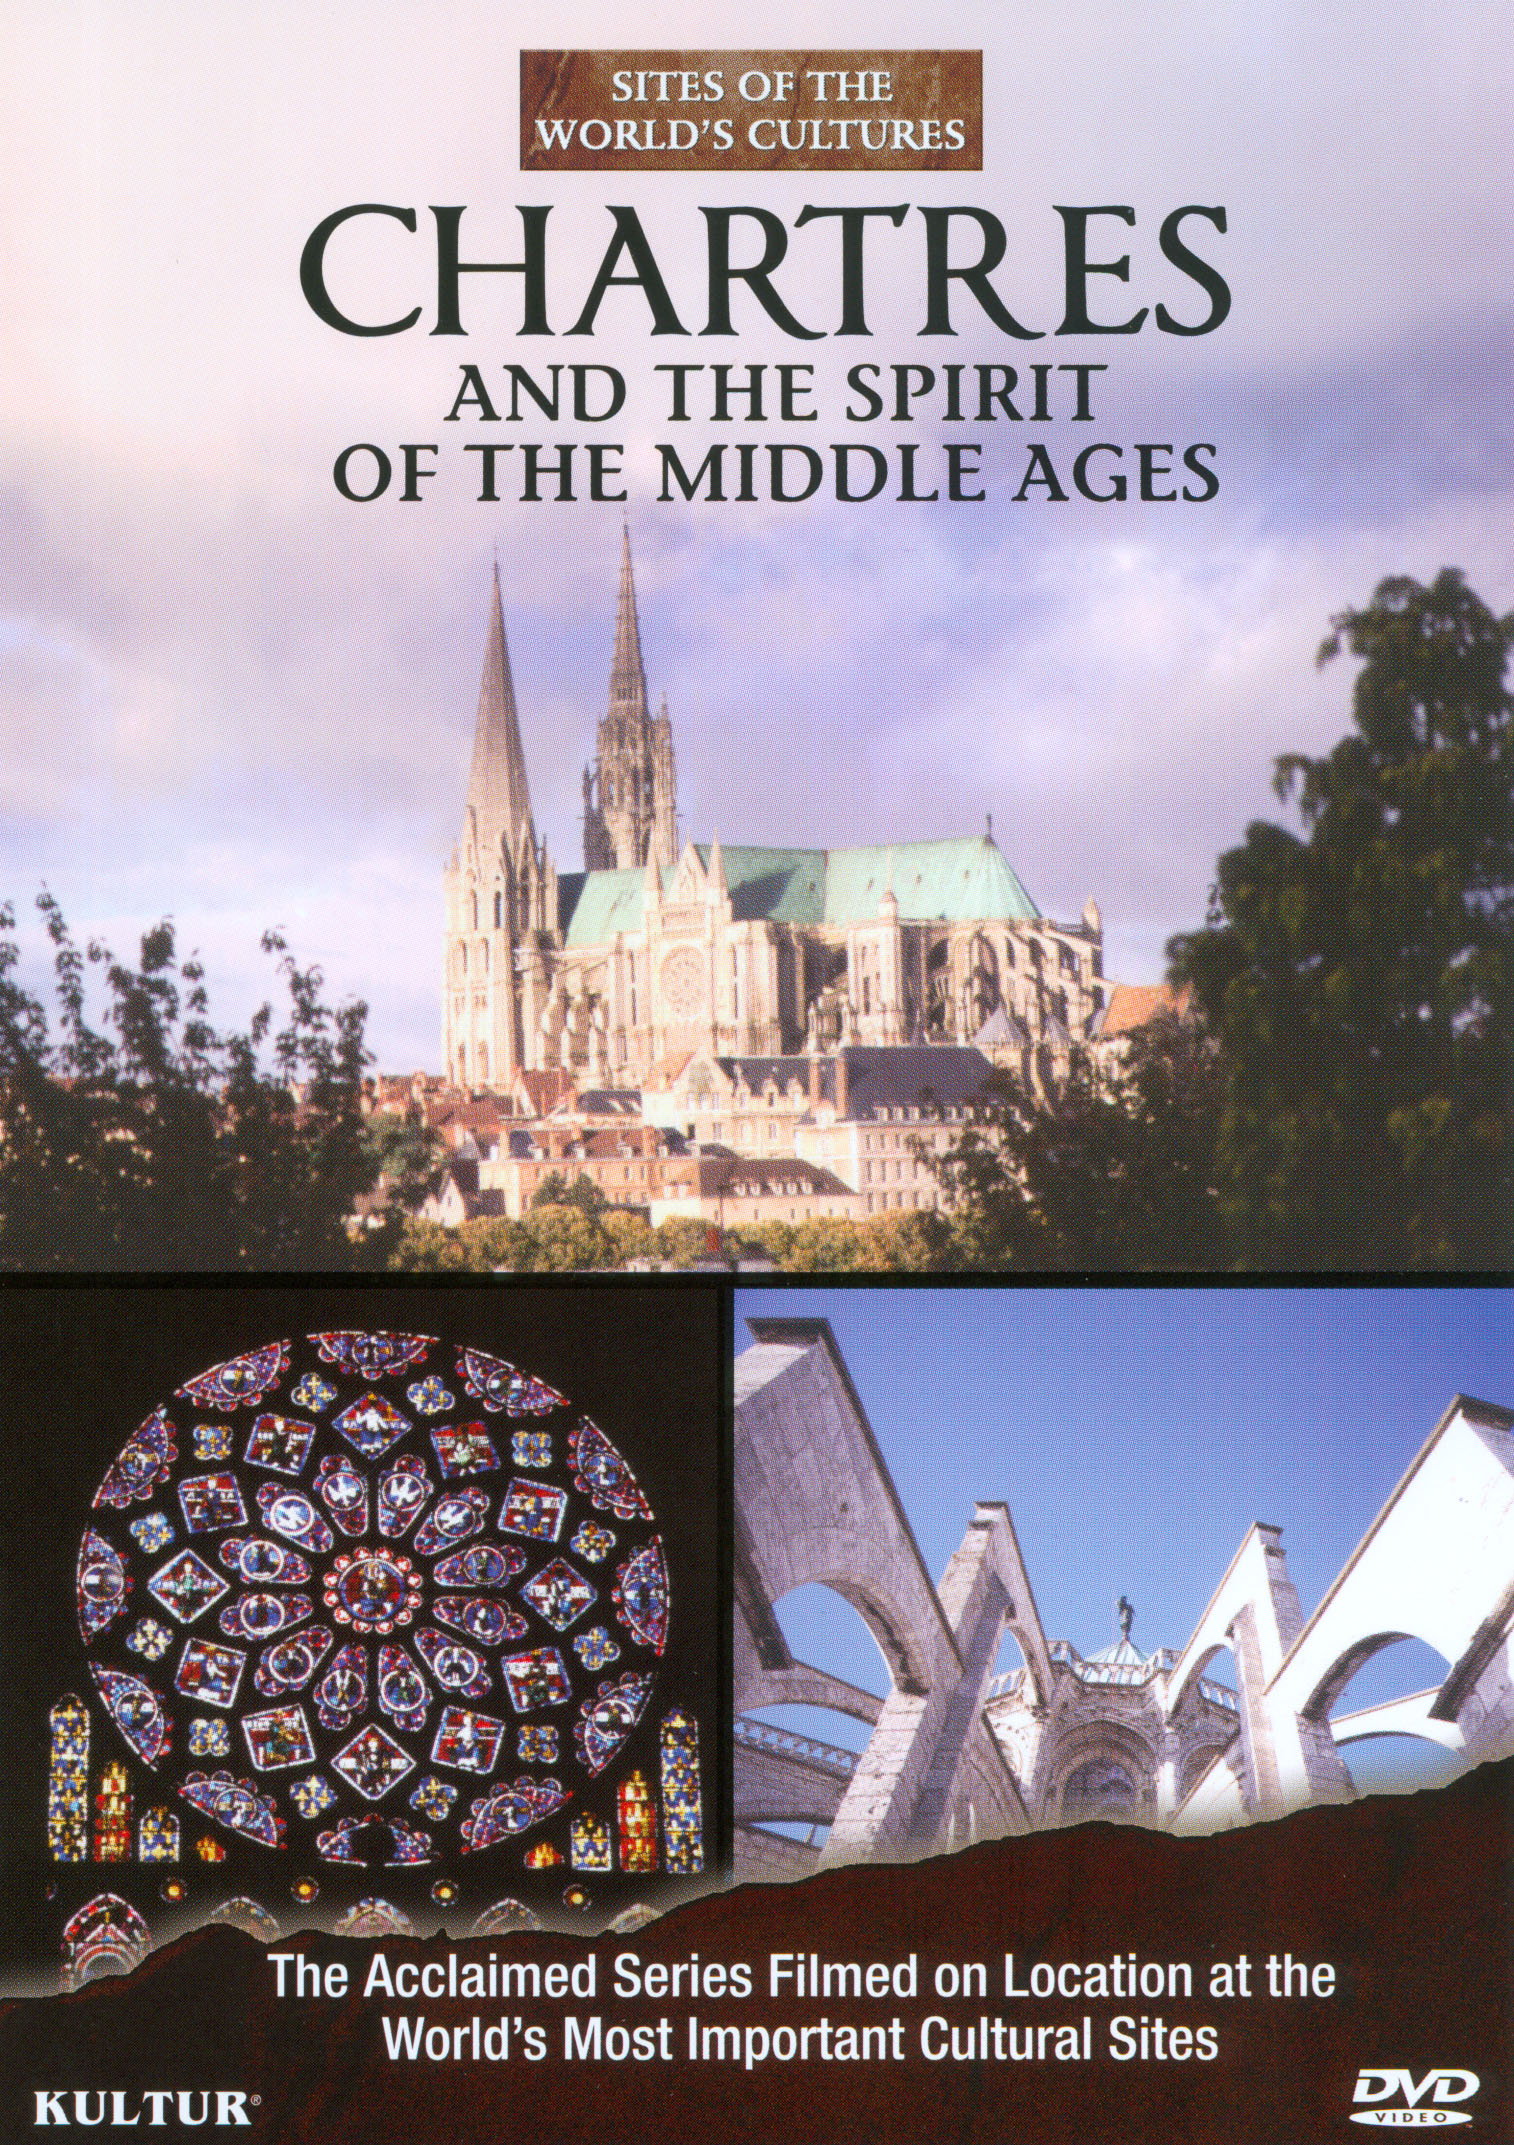 Sites of the World's Cultures: Chartres and the Spirit of the Middle Ages